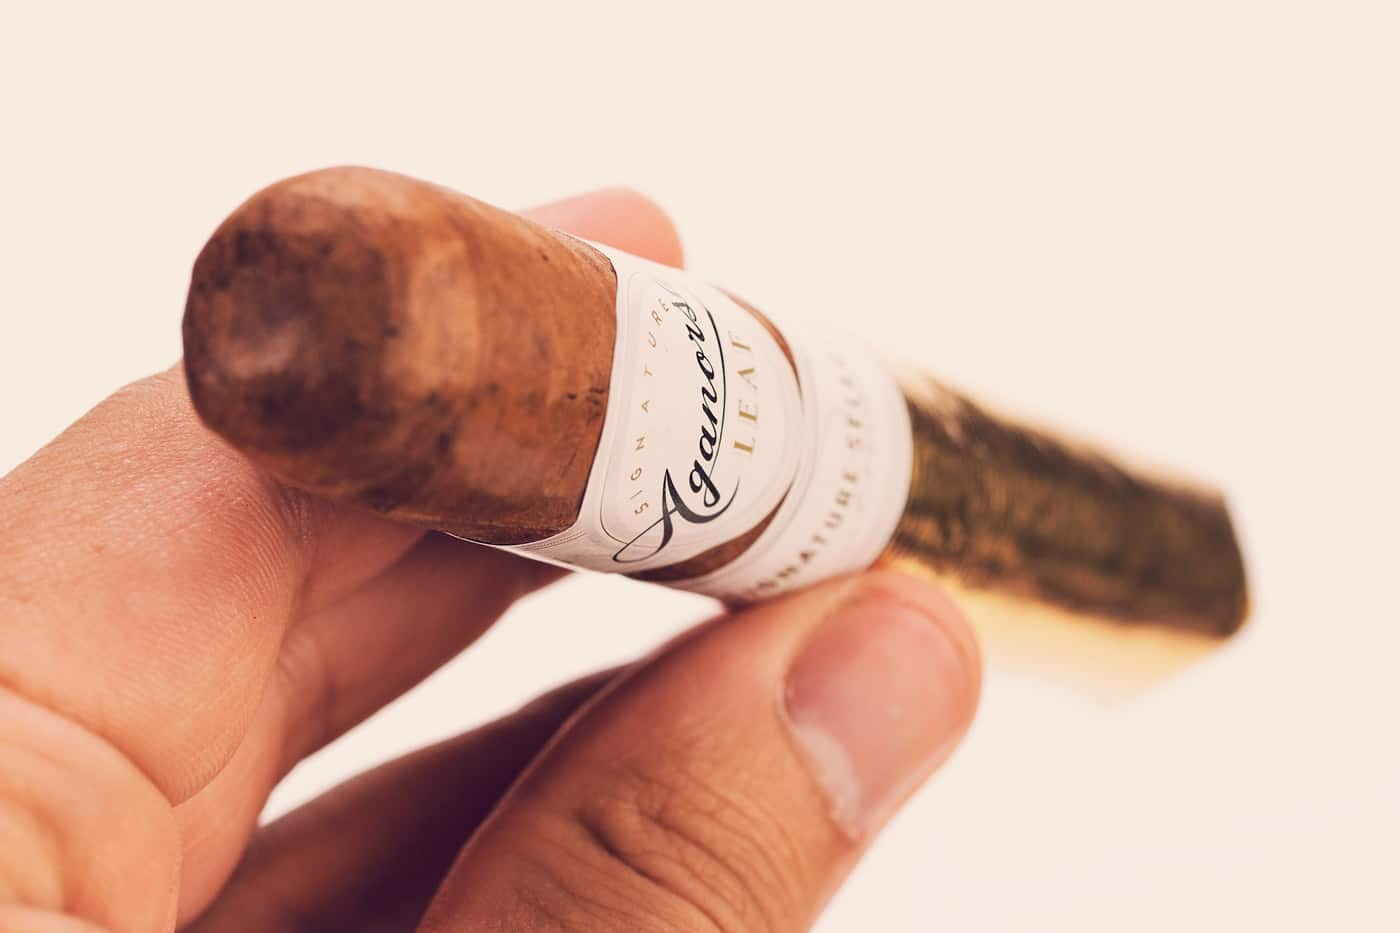 Aganorsa Leaf Signature Selection Robusto cigar review